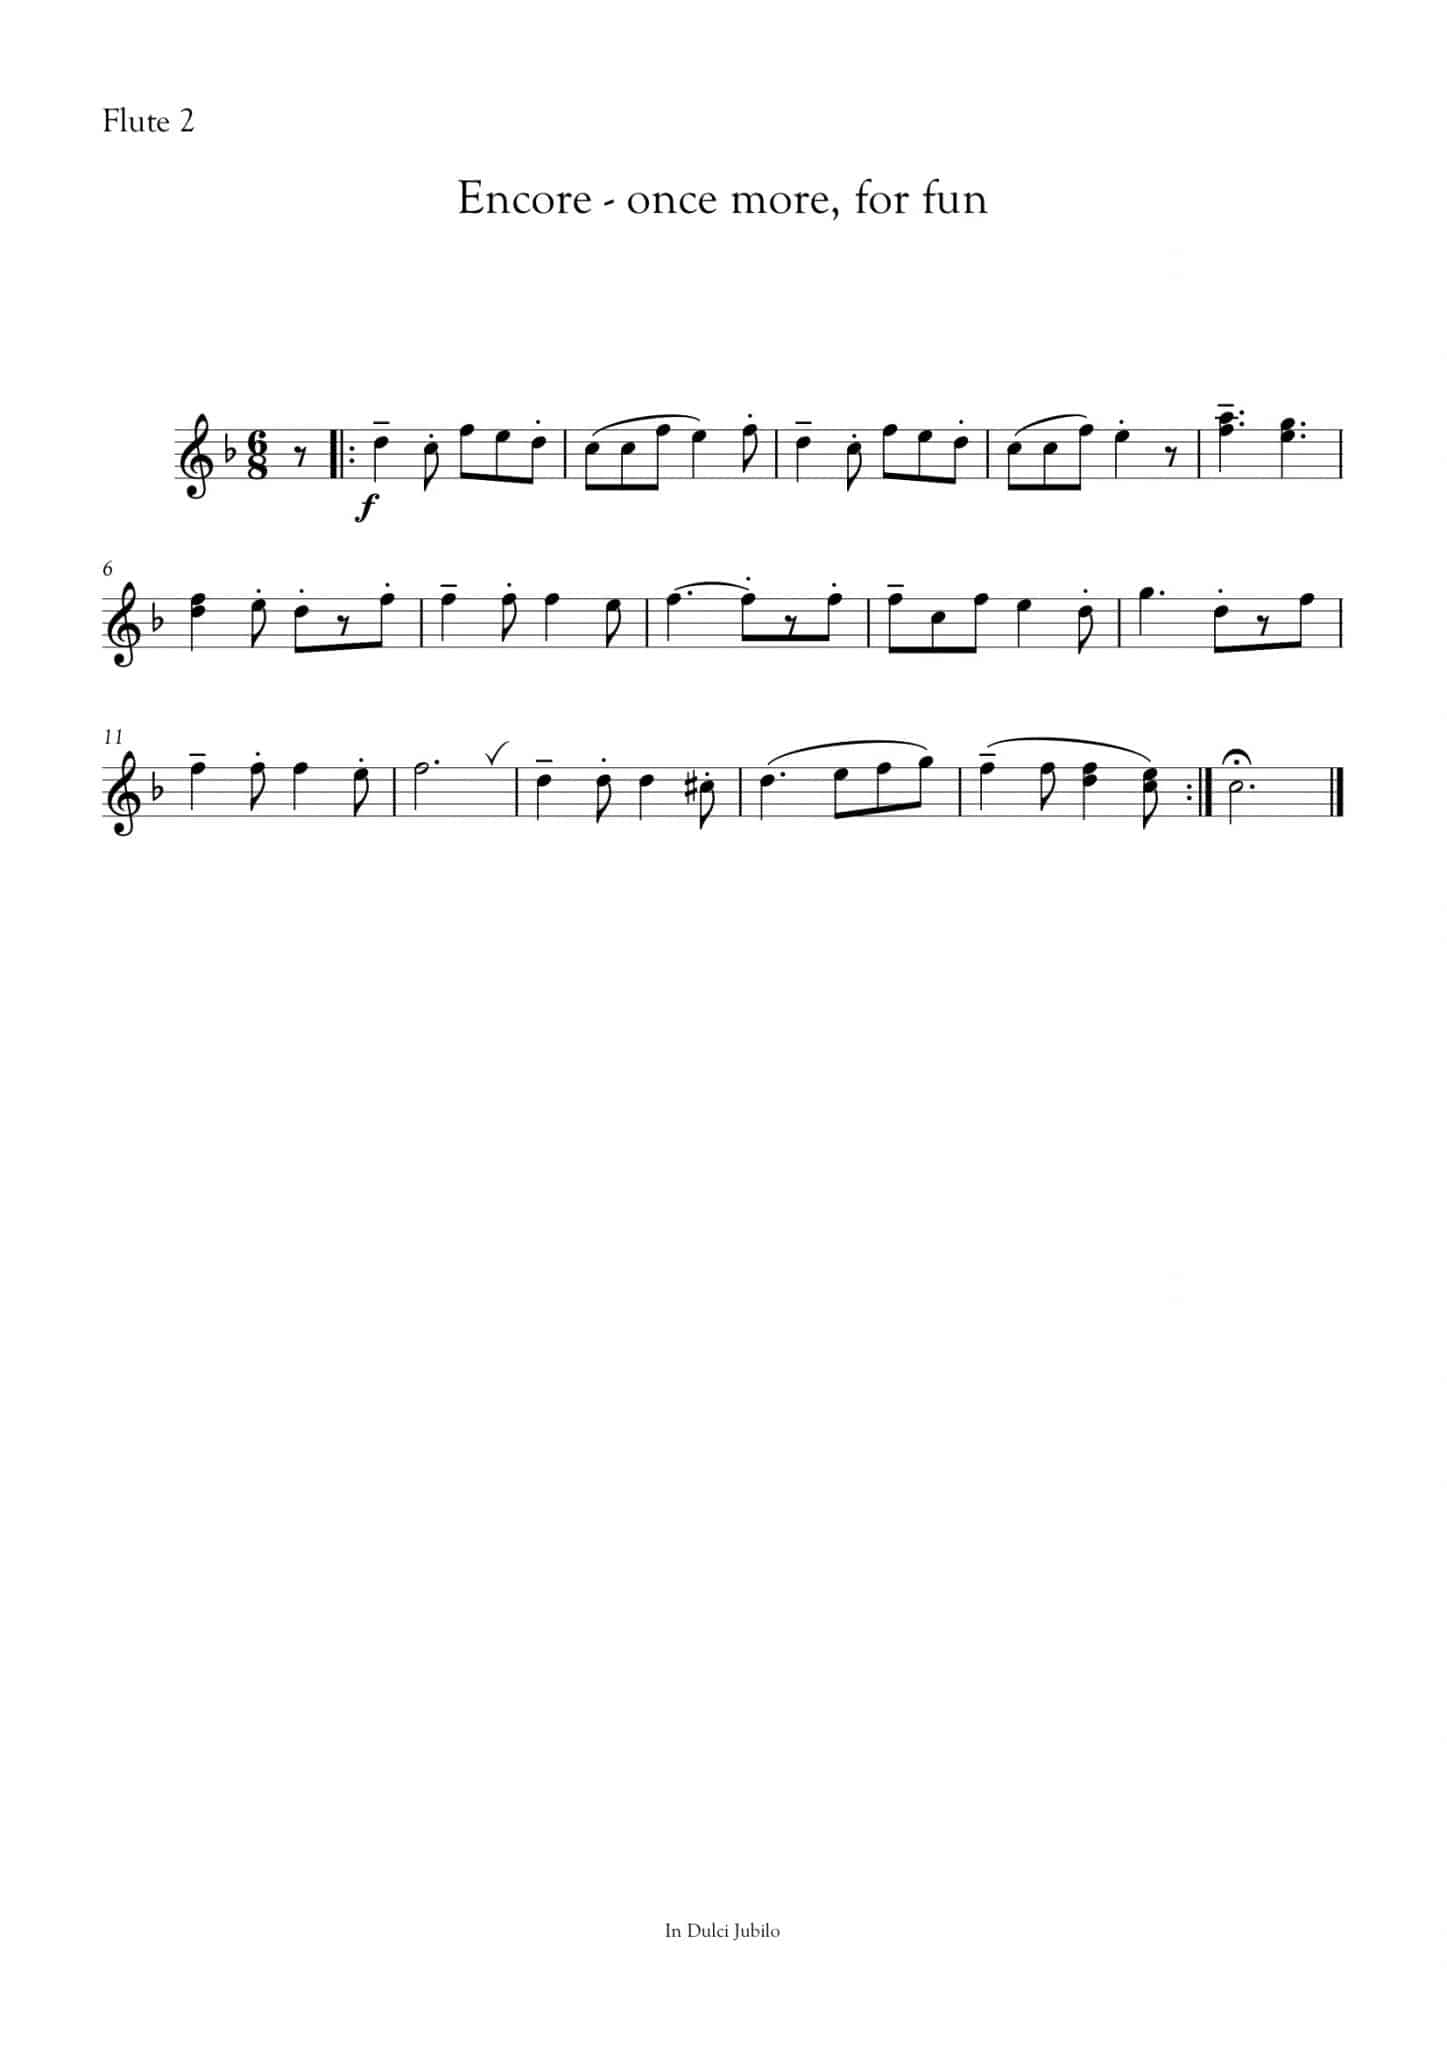 Simply Flute - In Dulci Jubilo - all parts_title sheet_no words copy_Part23